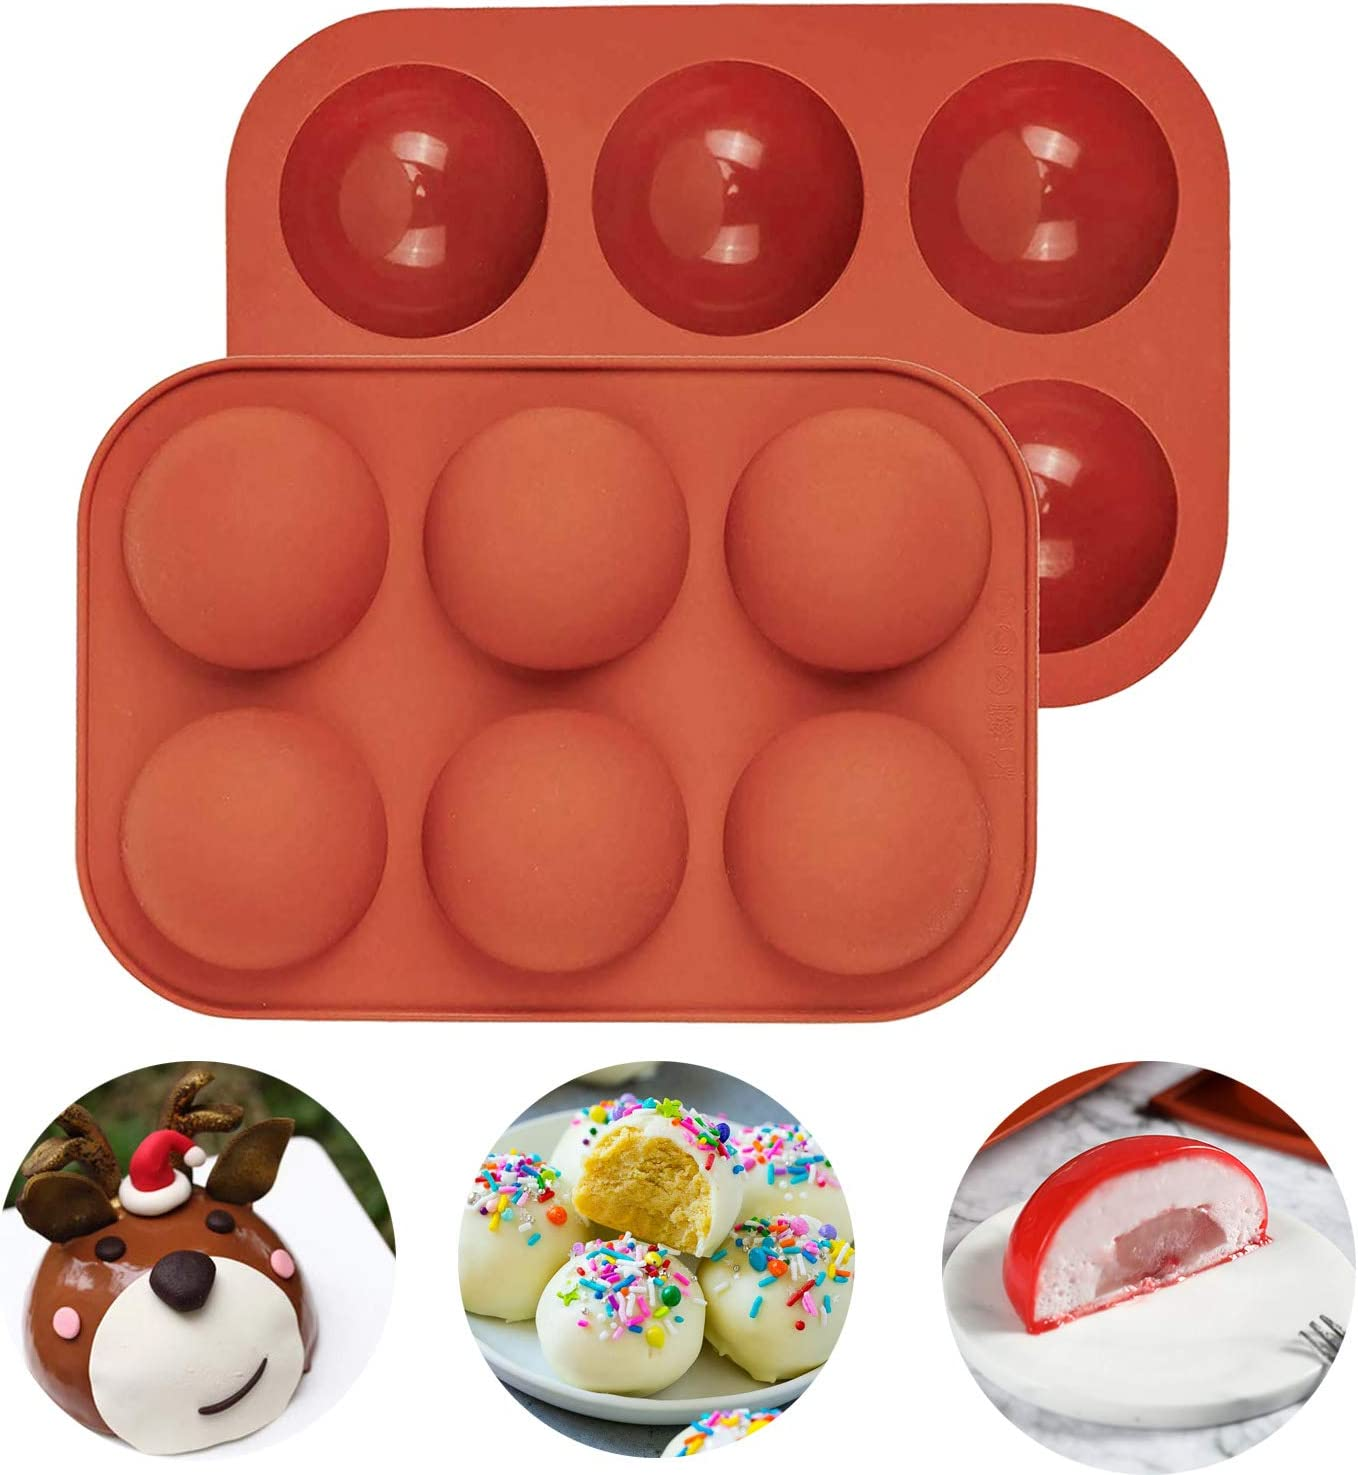 Hot Chocolate Bomb Mold, Hemisphere Cake Mold, 6 Cavity Baking Molds, DIY Tool for Making Hot Chocolate Bombs, Round Shape Cake, Kitchen Accessories(2PCS,semicircle high: 0.98inch, diameter: 2.04inch)